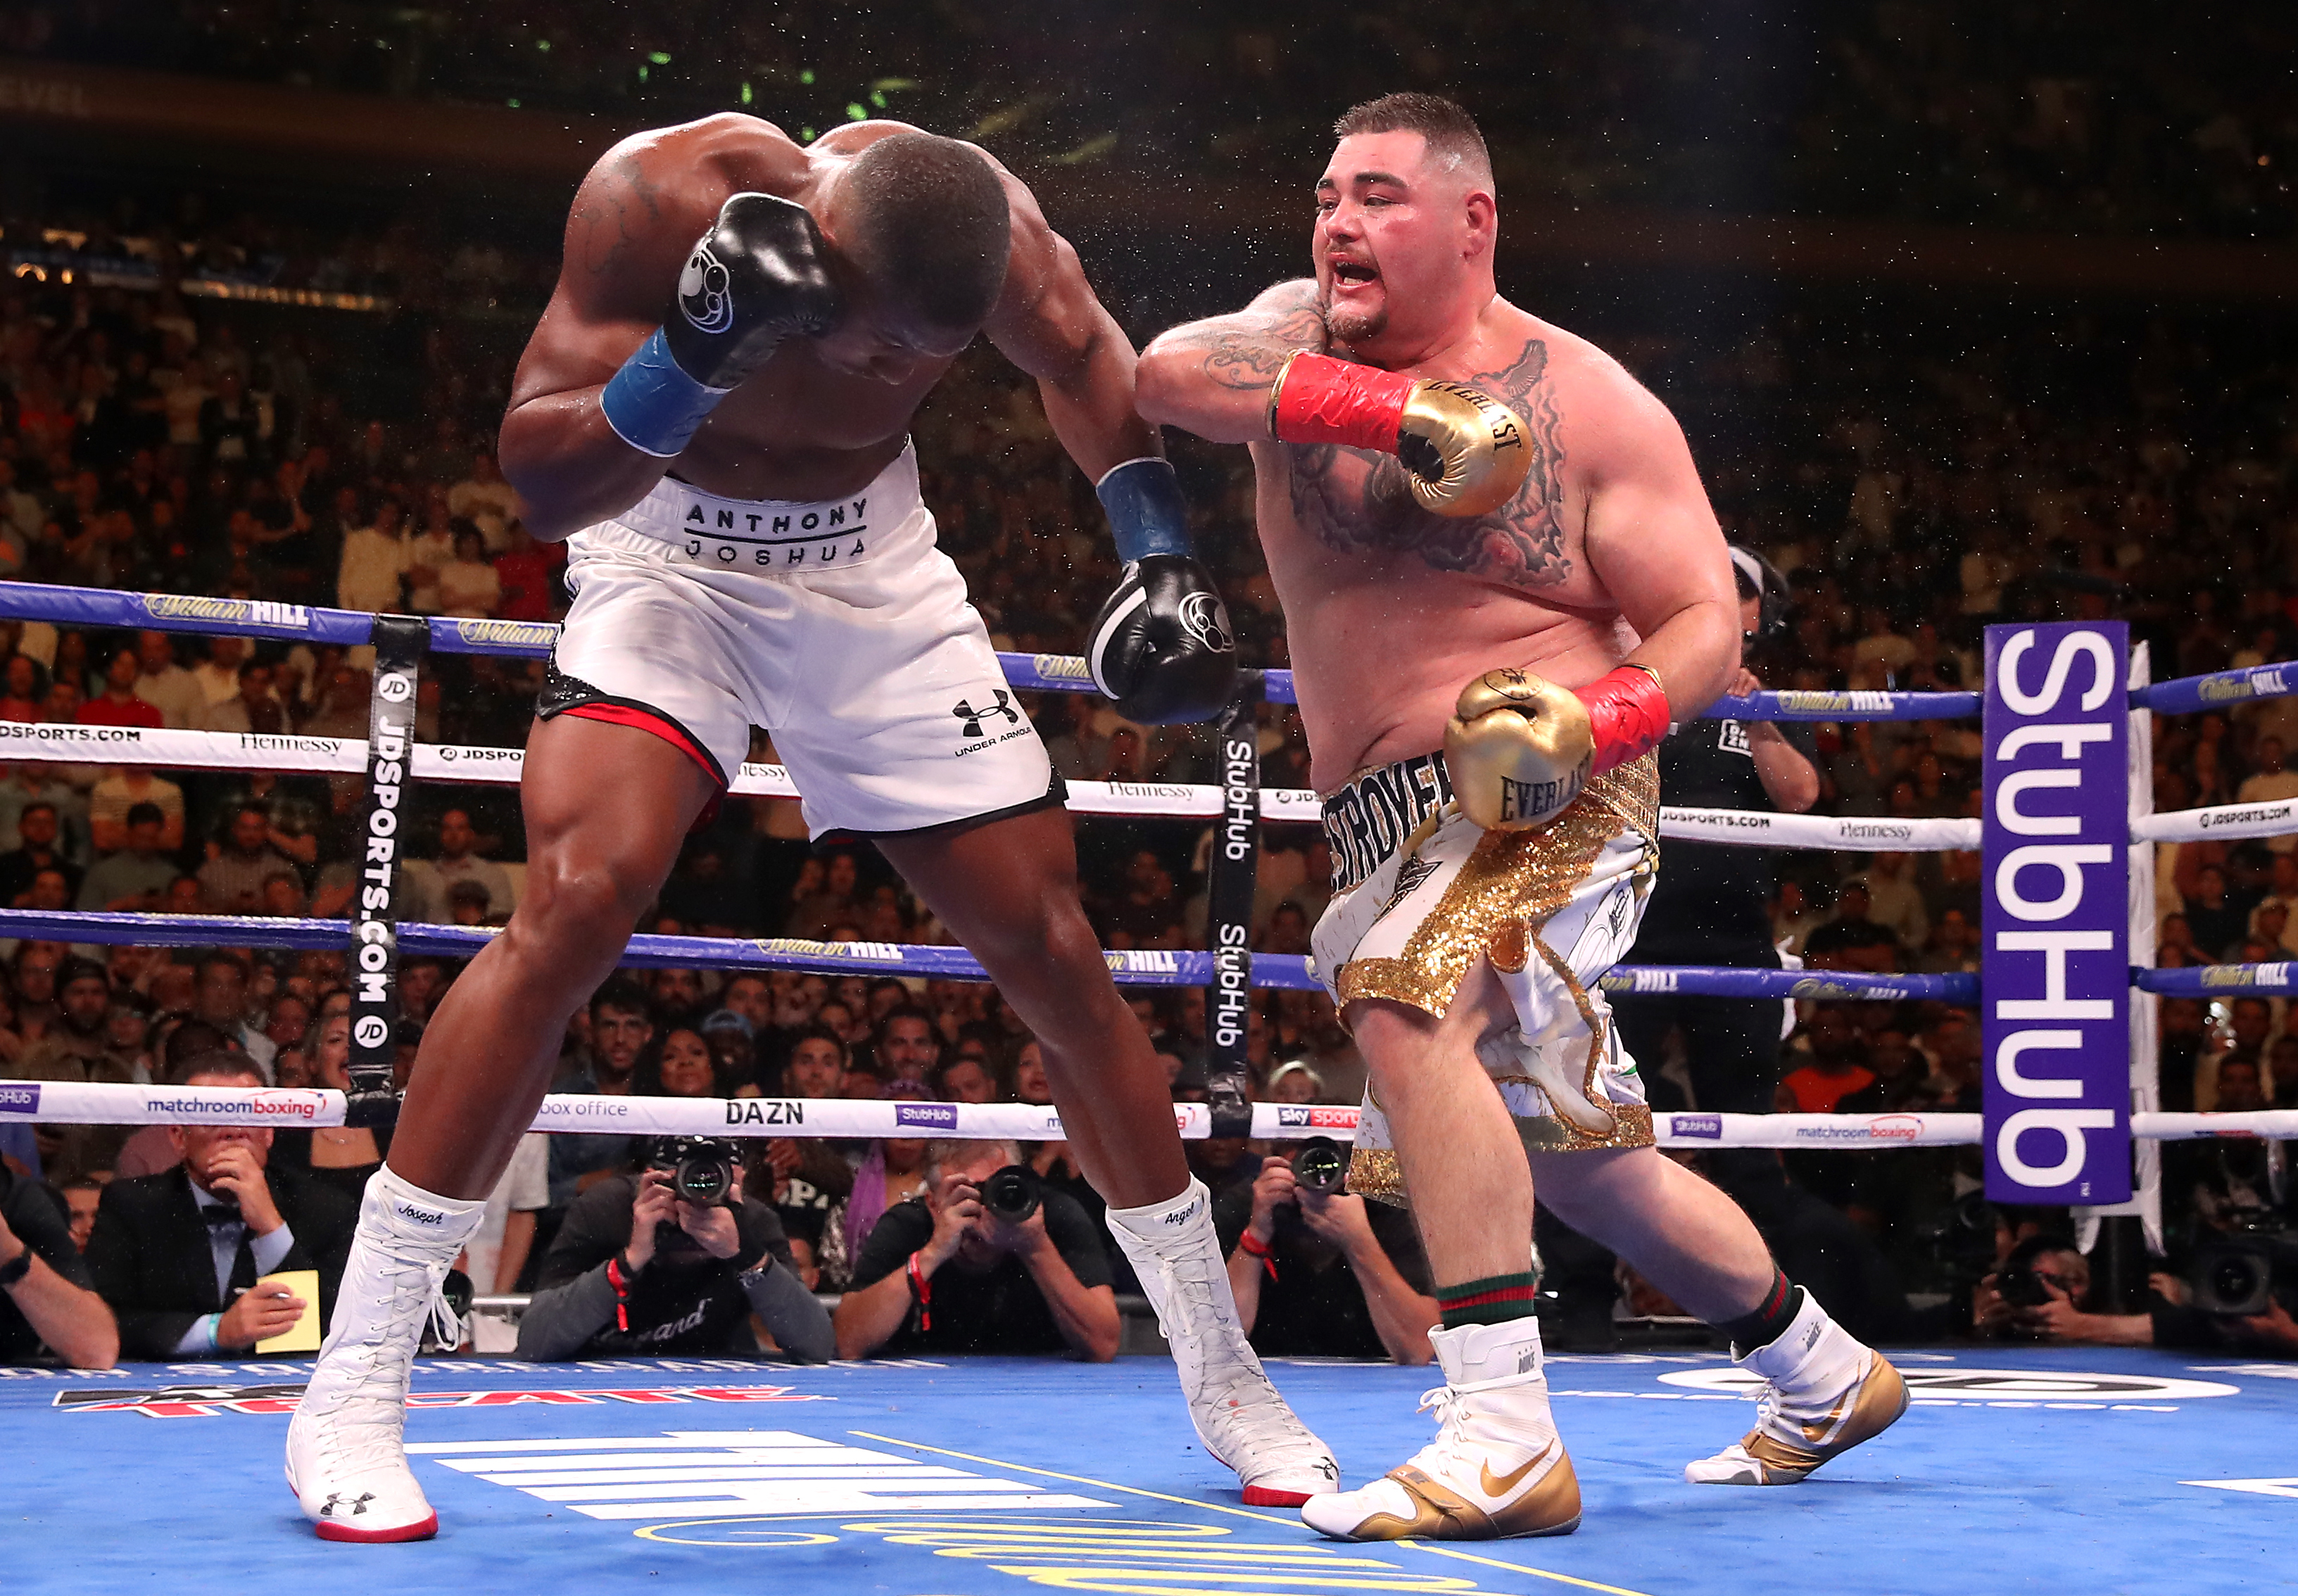 Joshua-Ruiz rematch to take place in Saudi Arabia